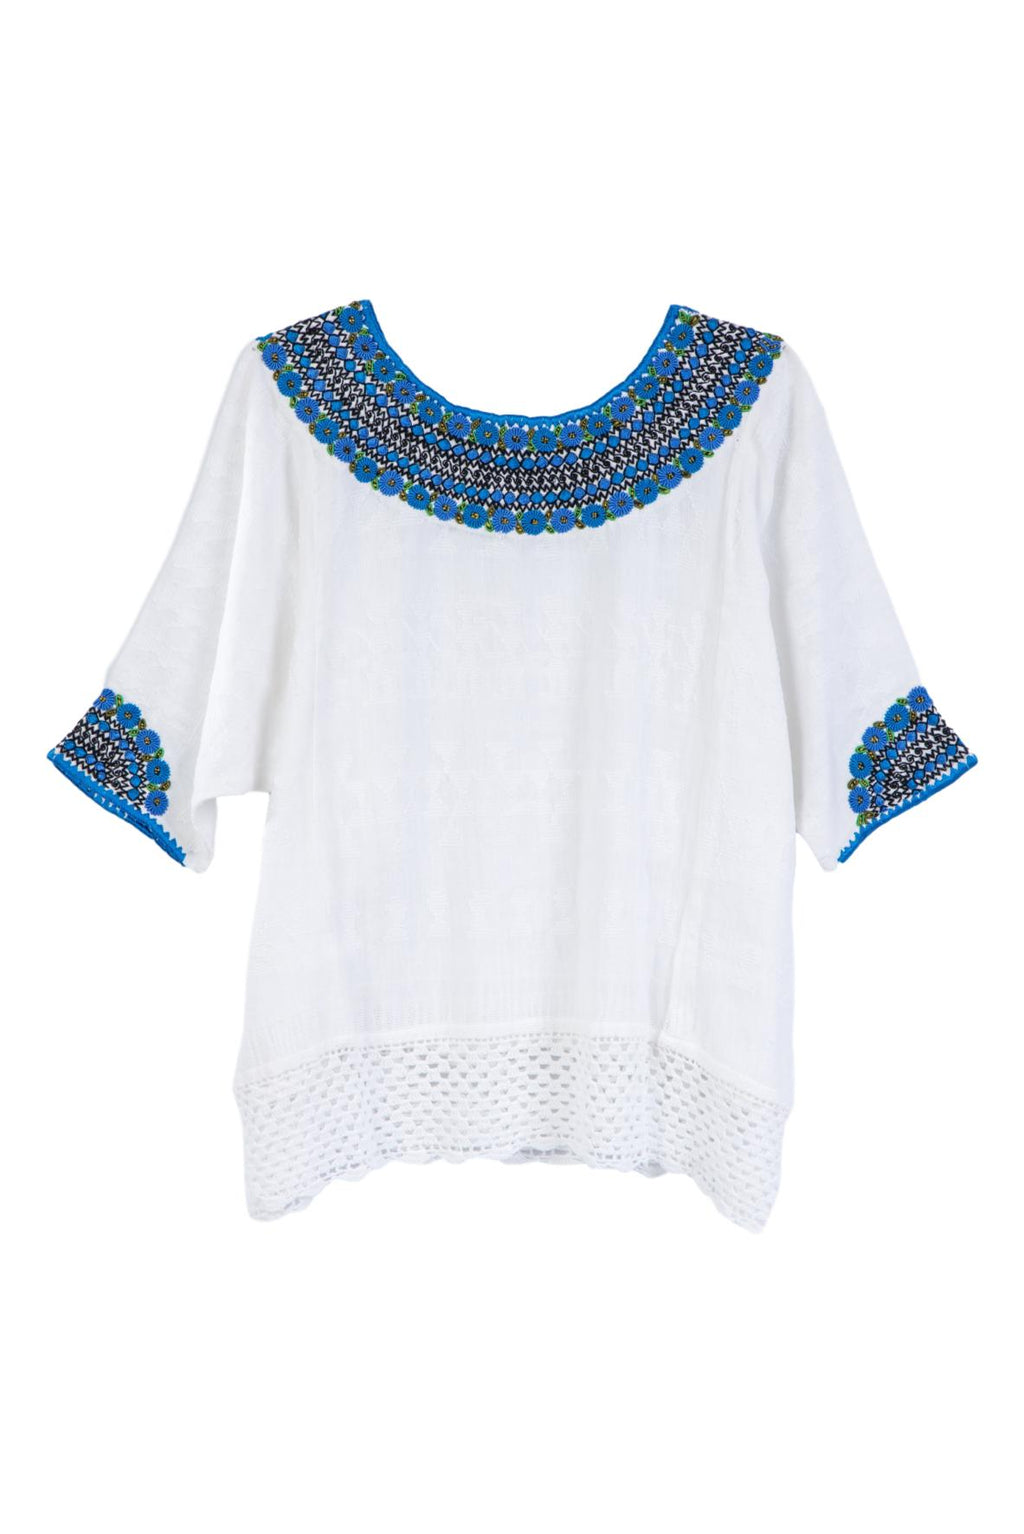 Leonore Guatemalan Blouse - Royal Blue and Black